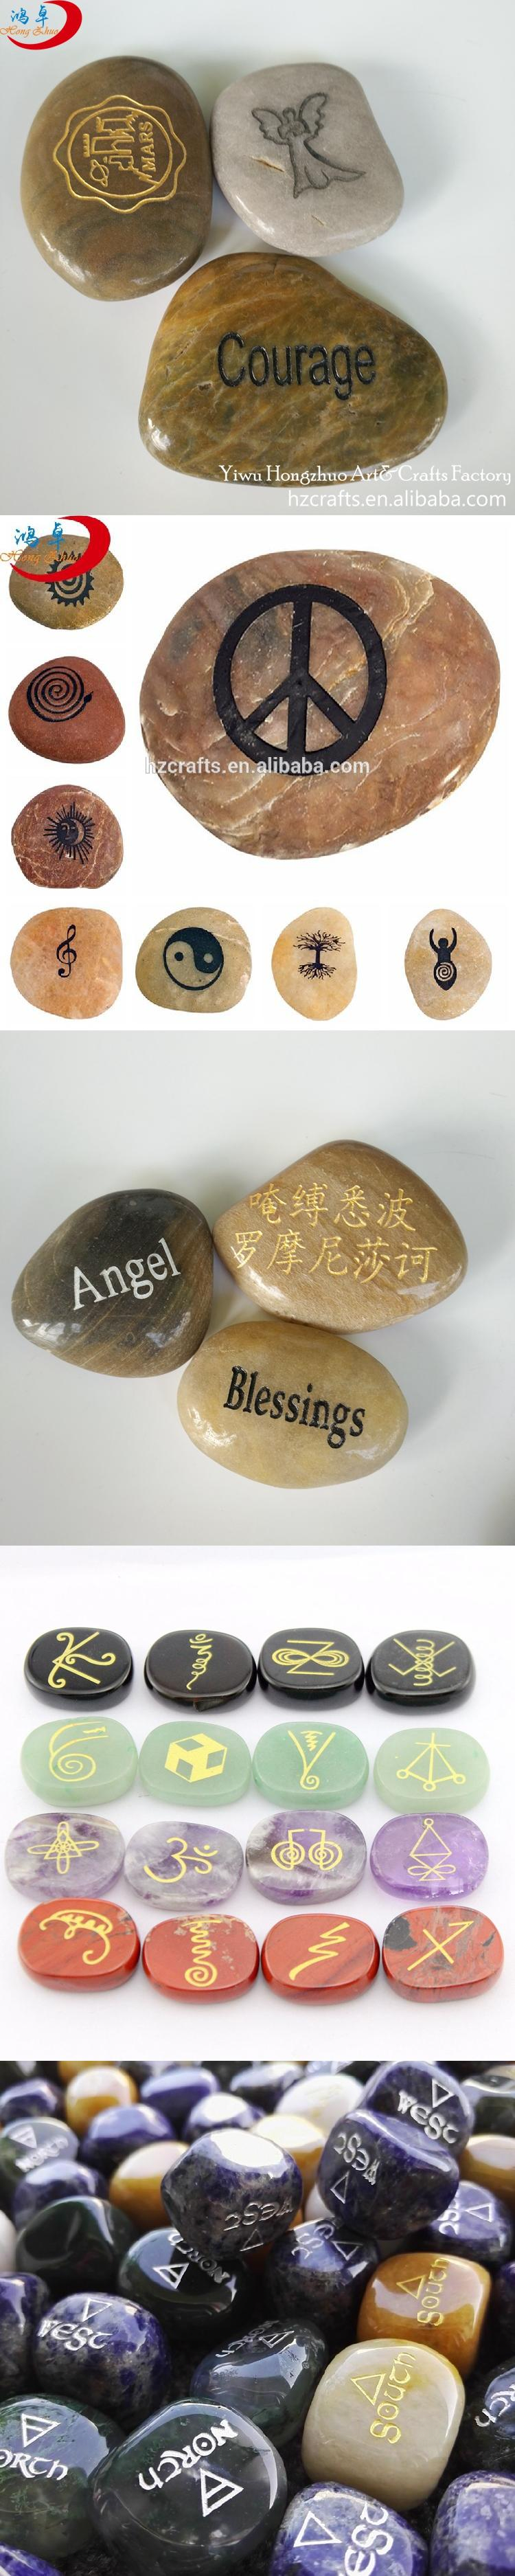 Engraved polished pebble stone for gift